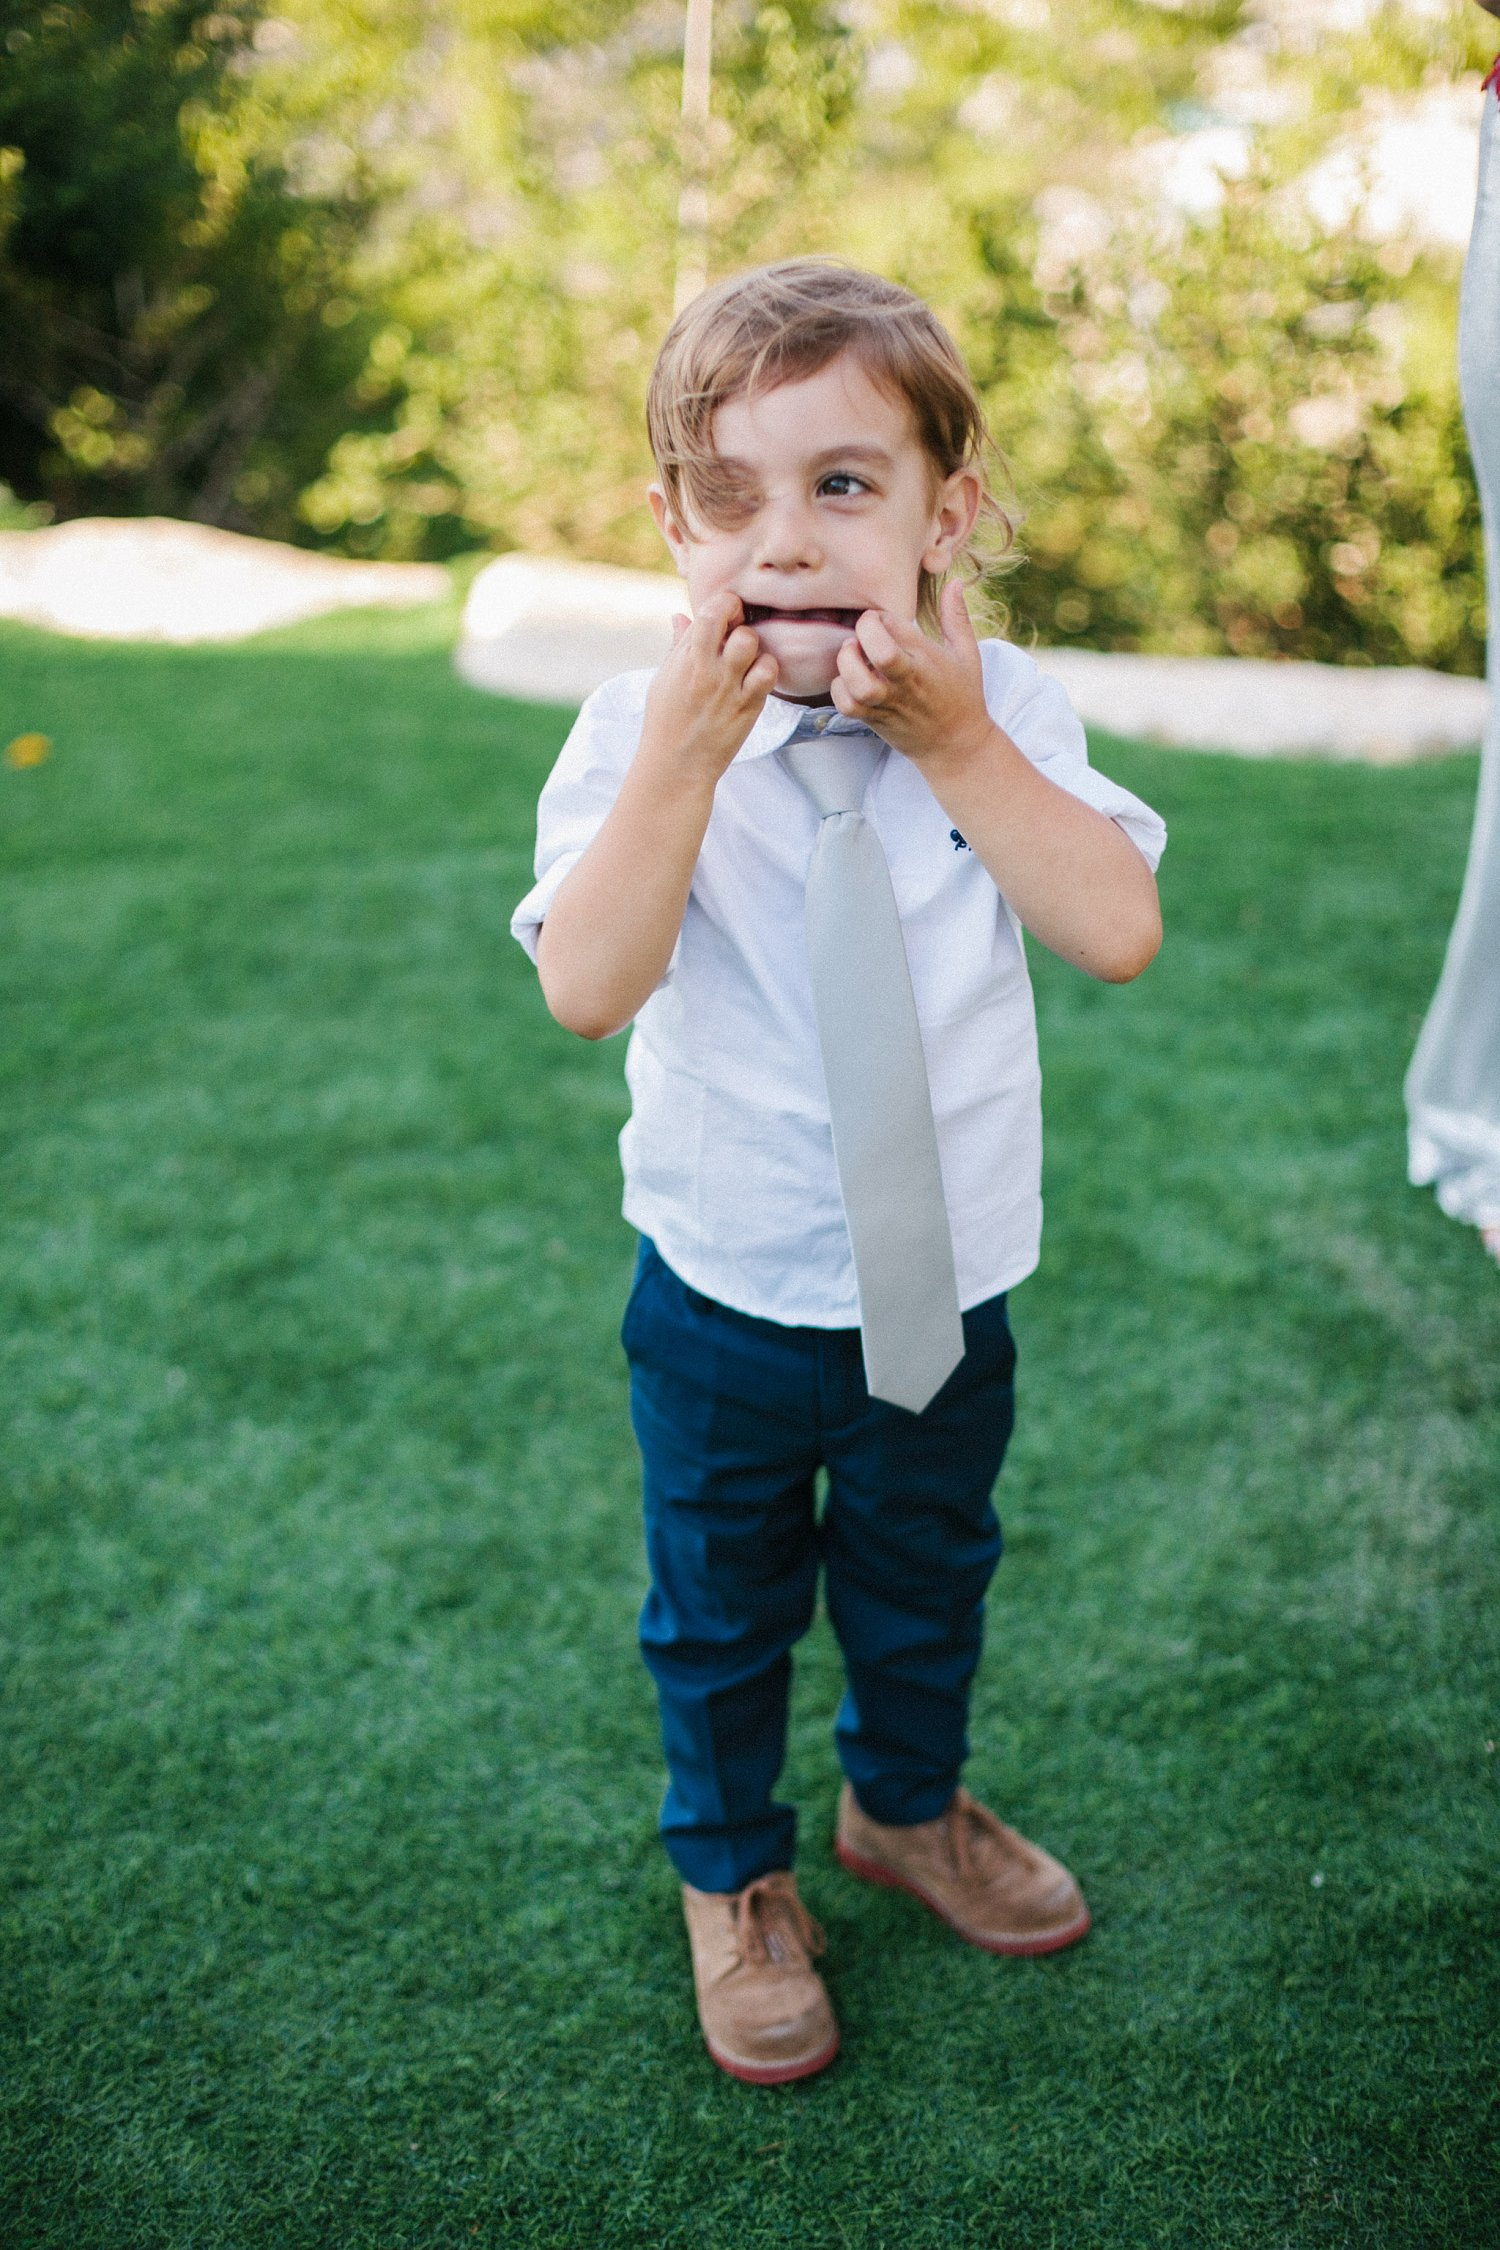 groom's nephew making silly face during portraits at Olmaya wedding